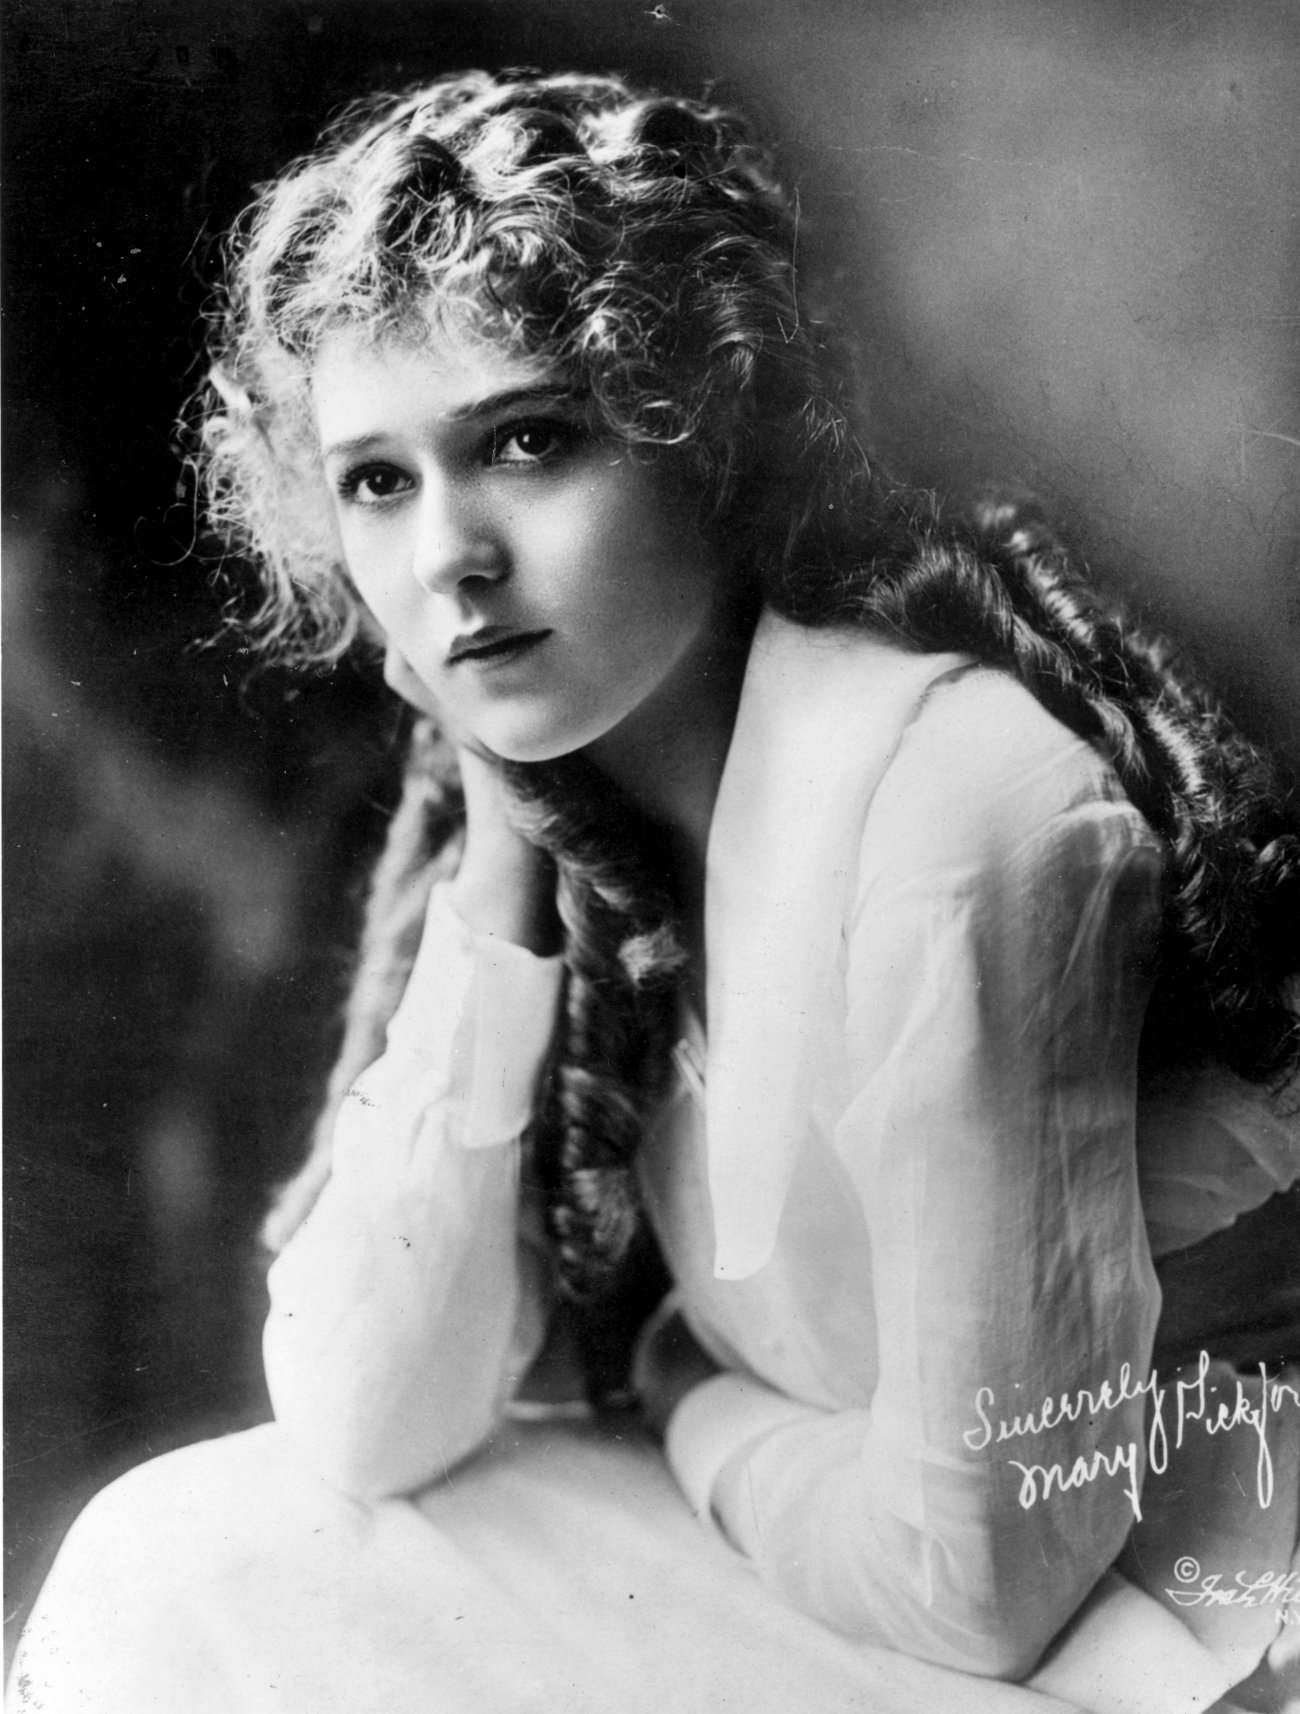 http://verdoux.files.wordpress.com/2008/02/mary-pickford.jpg